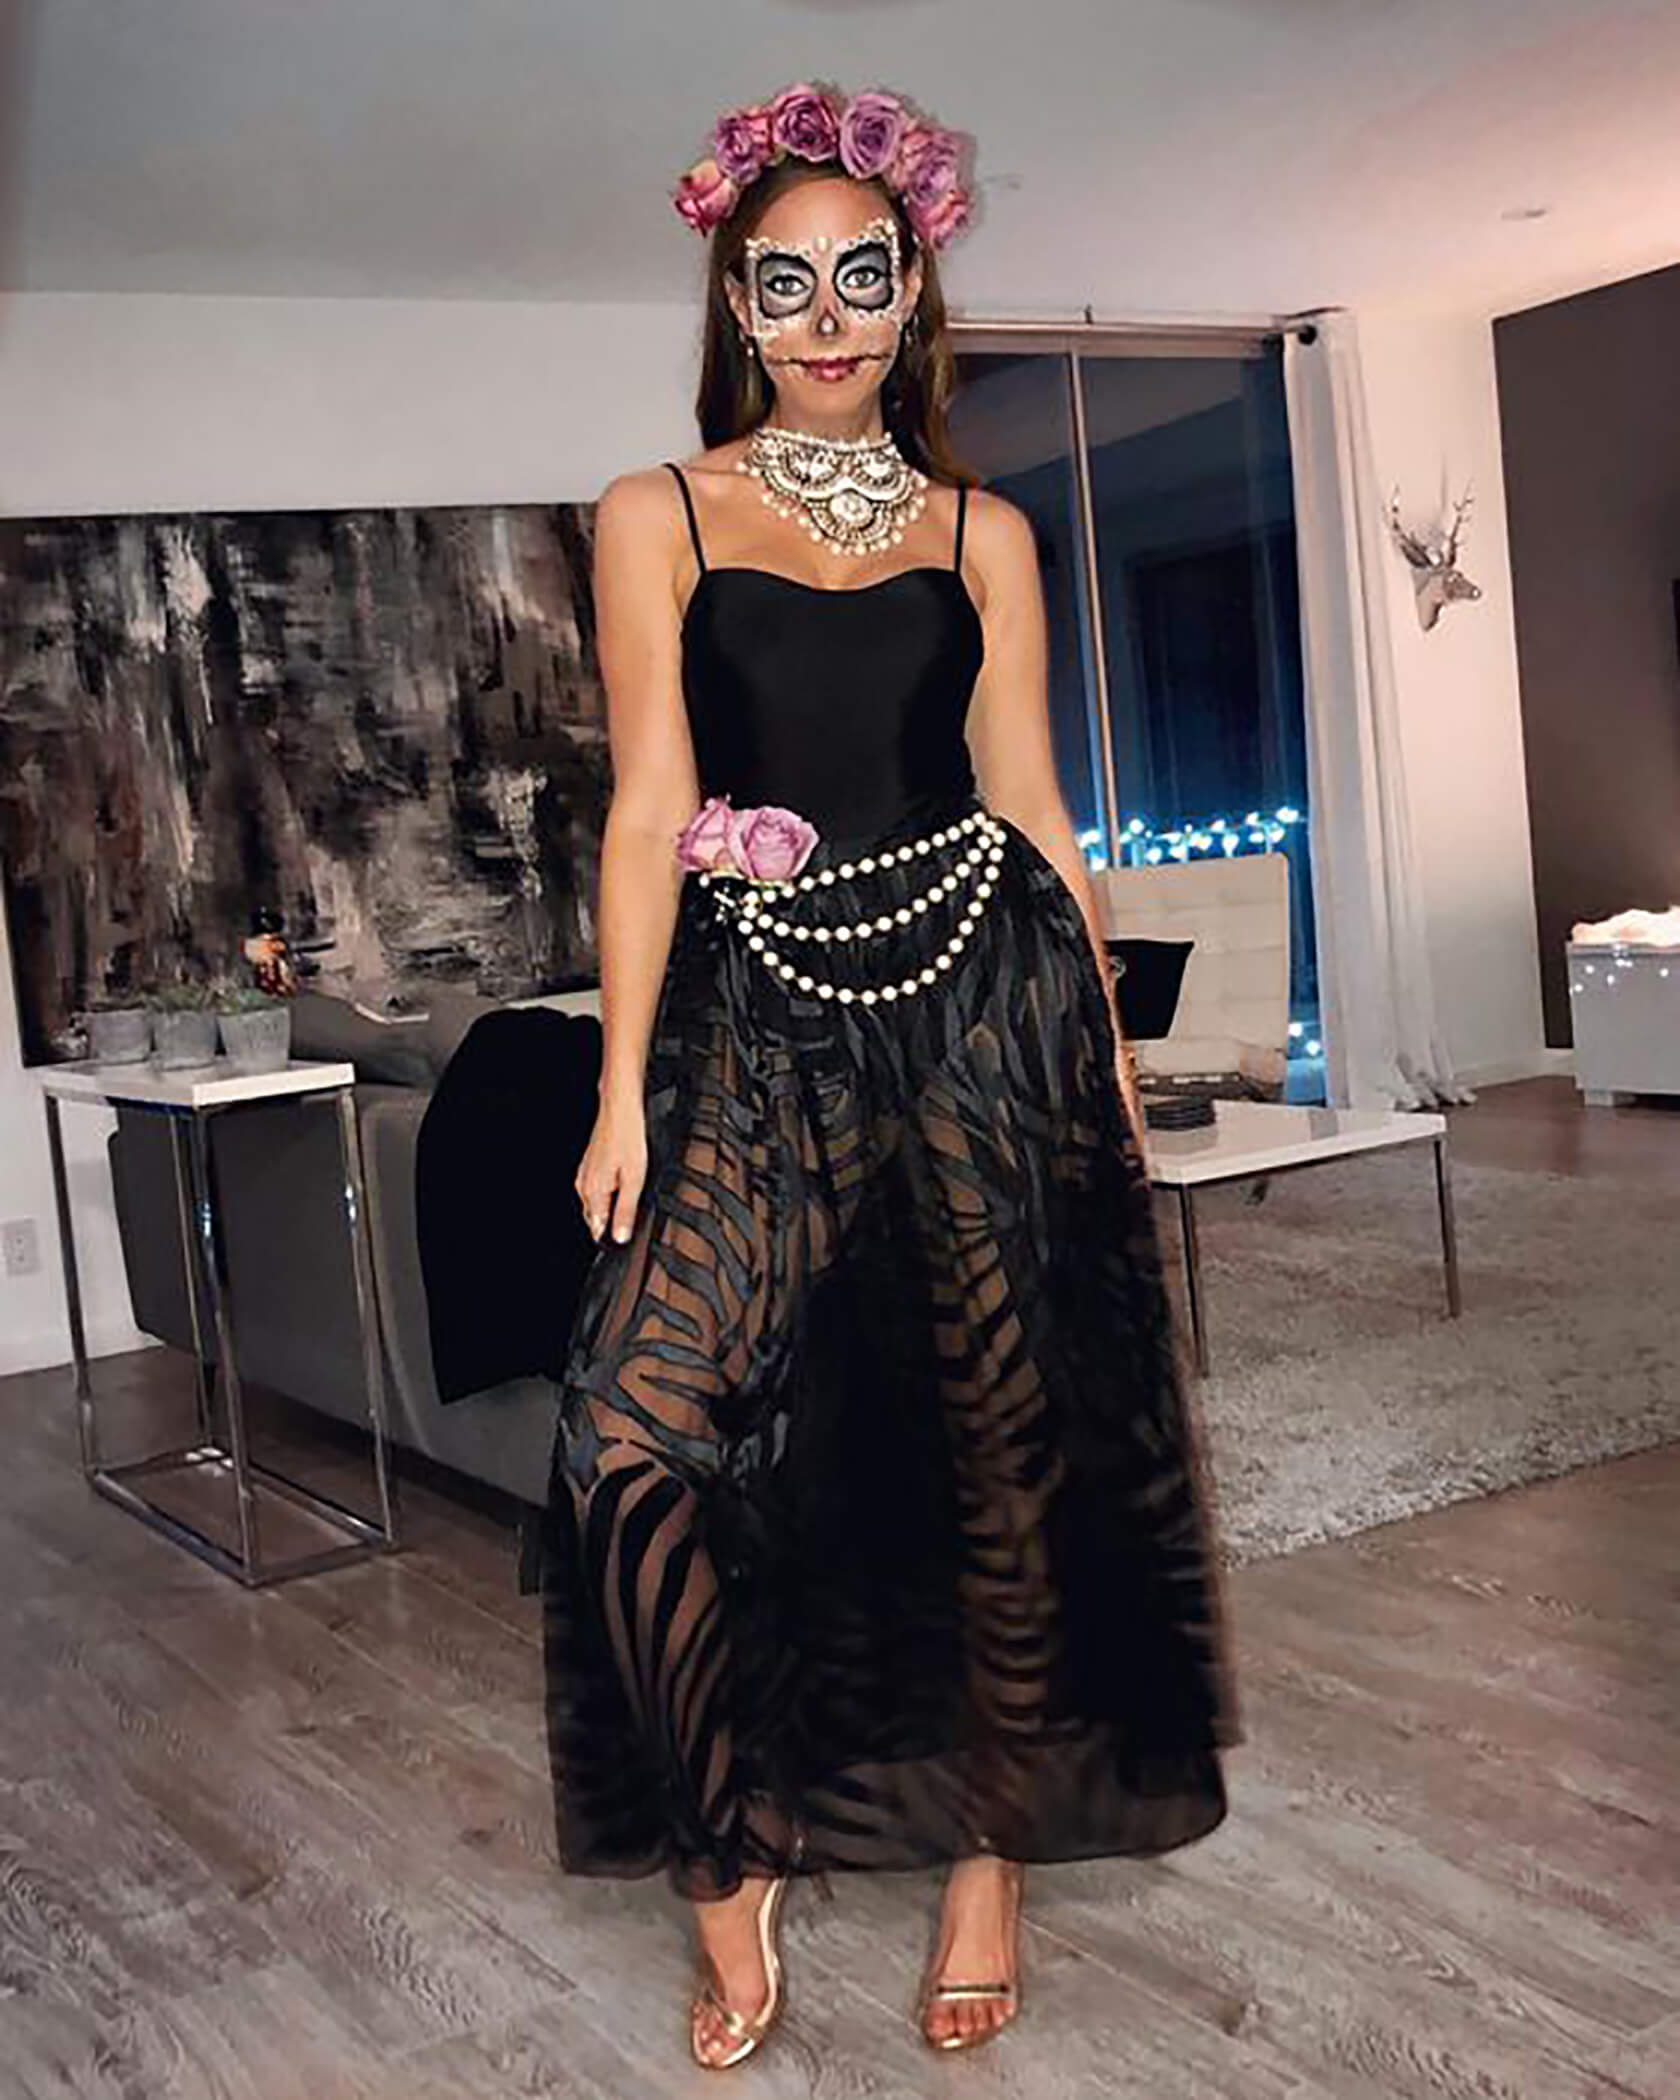 Sydne Style shows day of the dead costume ideas for halloween